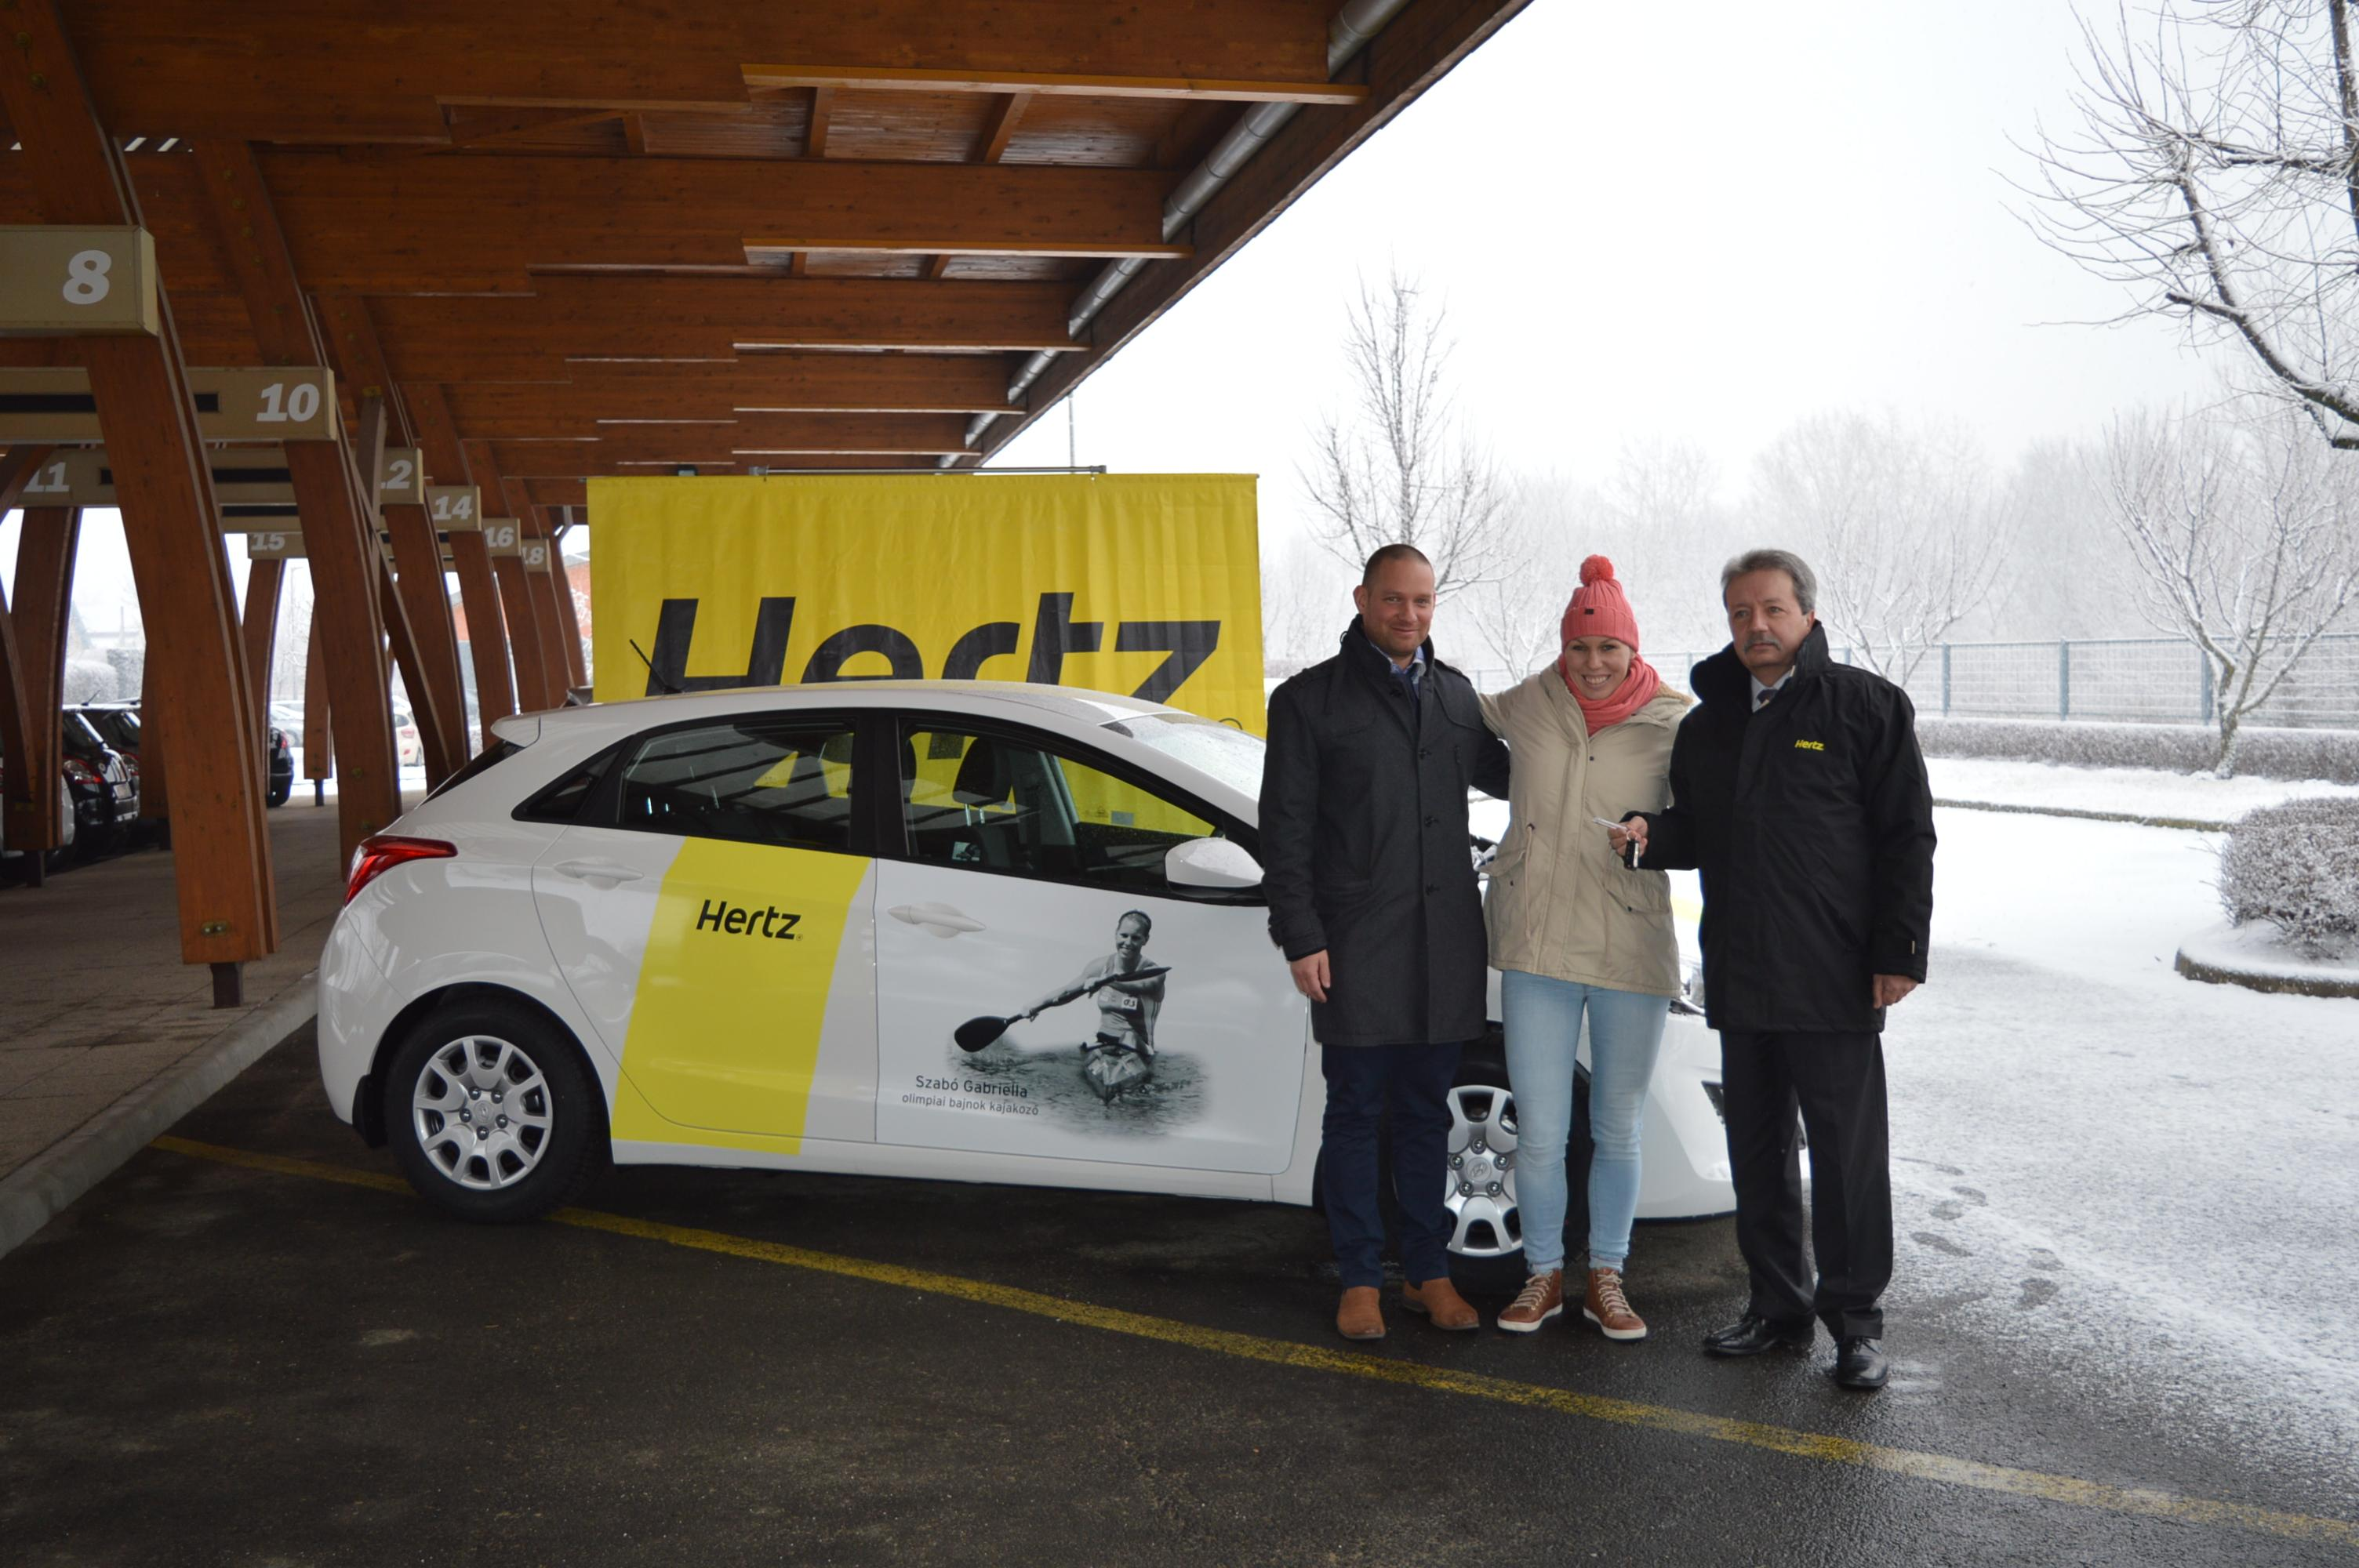 Olympic Champion, Gabriella Szabó Recieves Gift Of A New Hyundai Car From Hertz